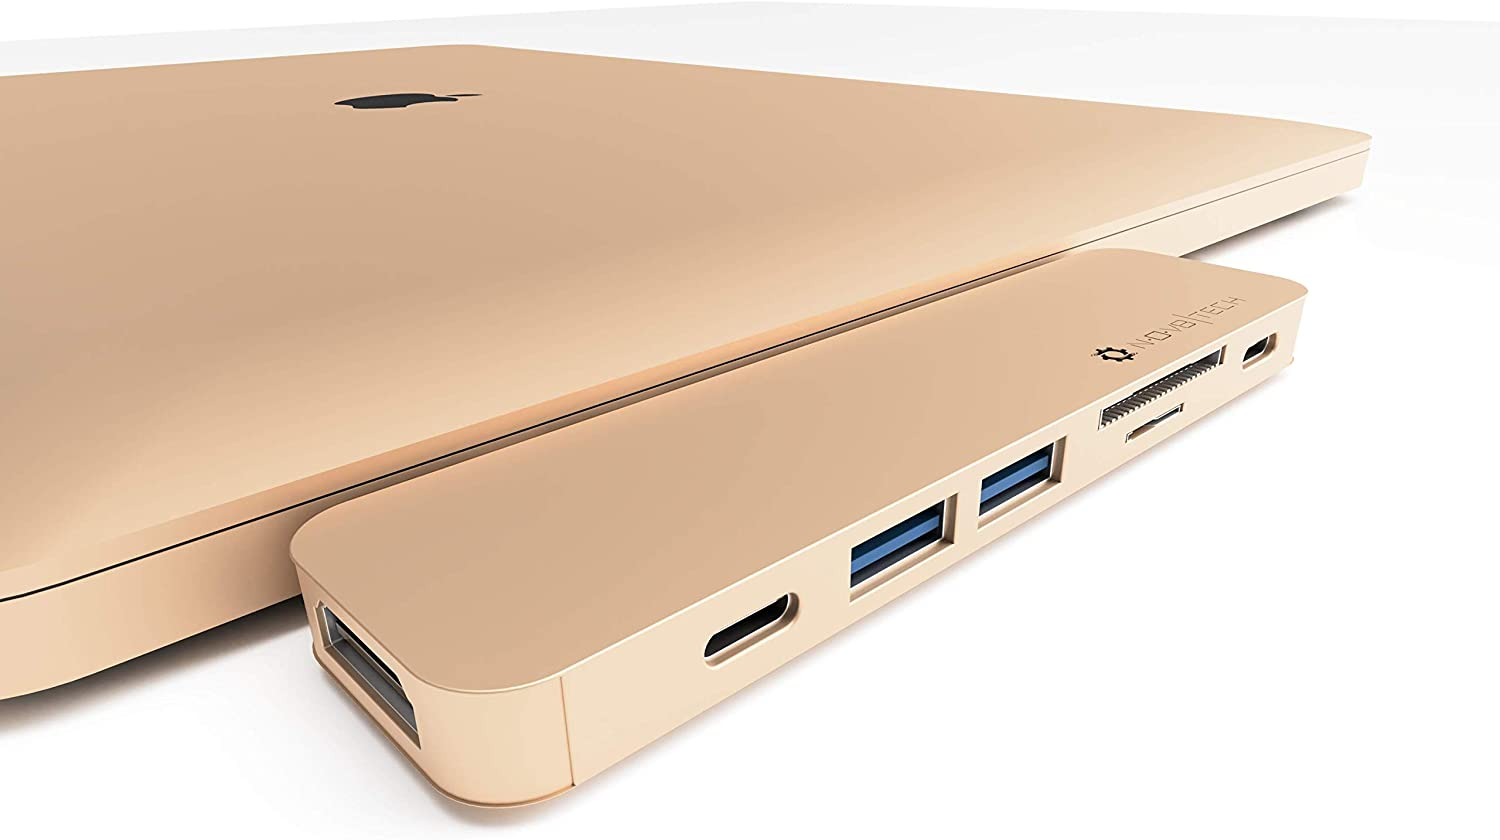 NOV8Tech USB-C Hub Docking Station for MacBook Pro 2019-16 and MacBook Air 2019-18 7 in 2, 4K HDMI, Thunderbolt 3 100W PD Charger 40GBps Data, 2xUSB 3.0, USB 3.1 C 5GBps (Gold)